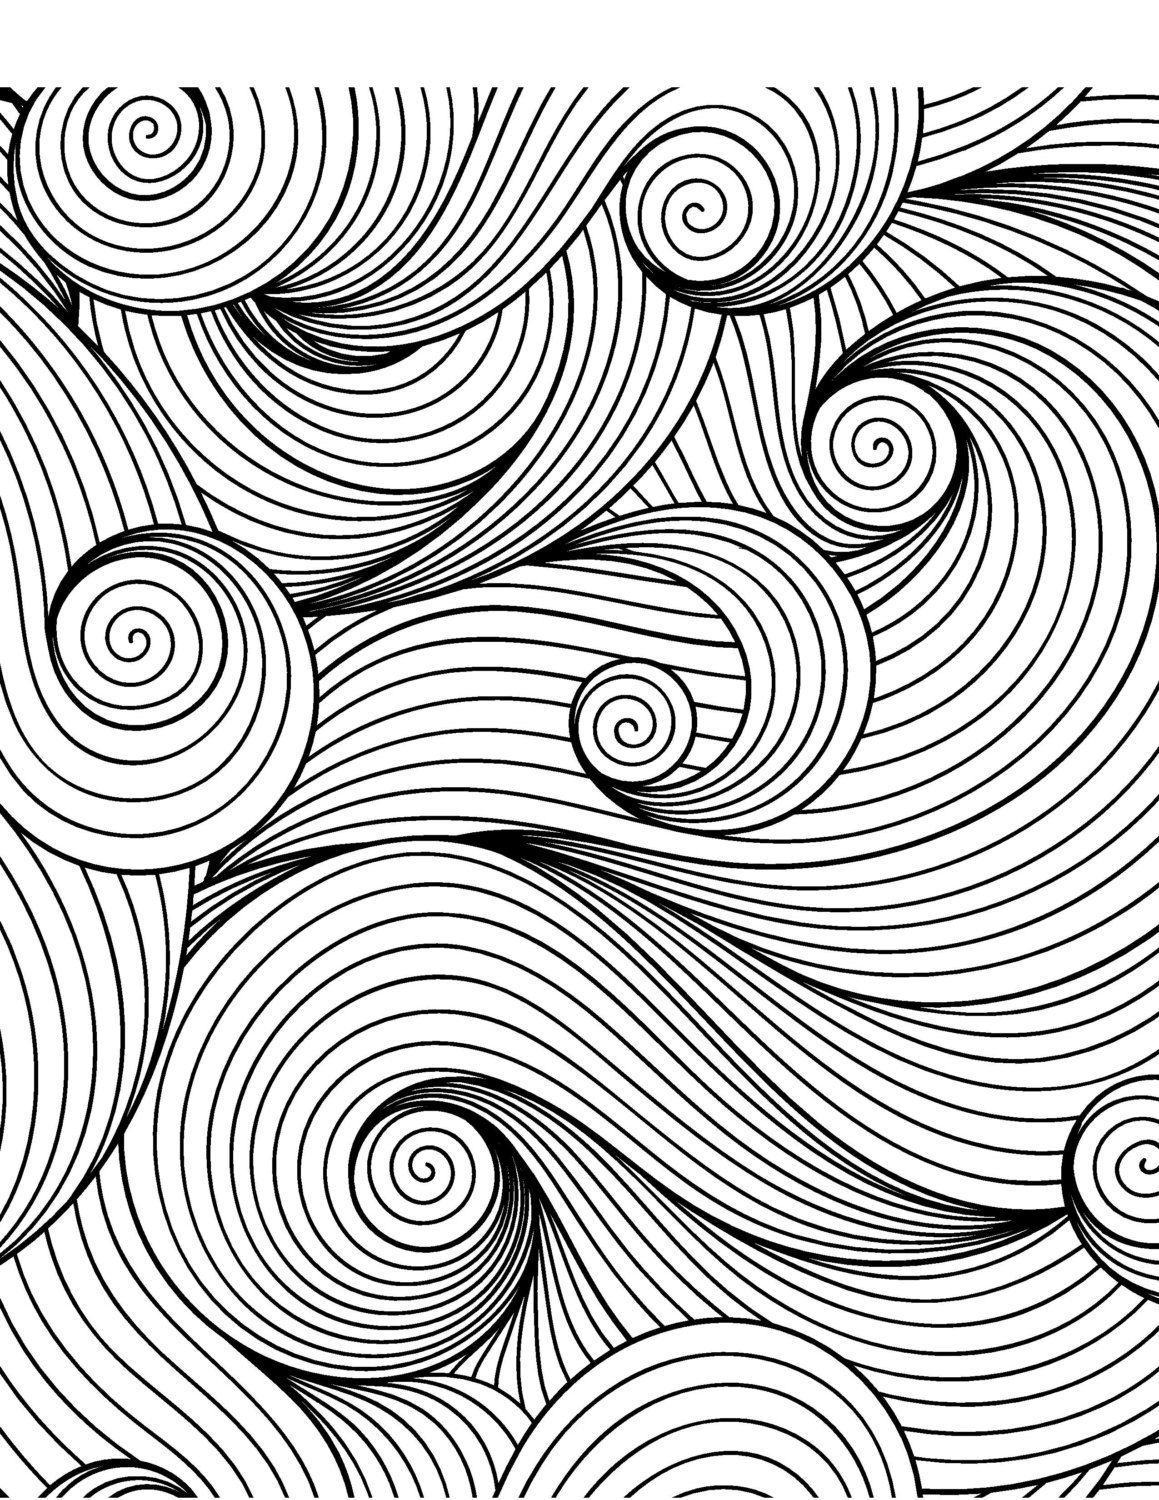 Calming Patterns Coloring Book